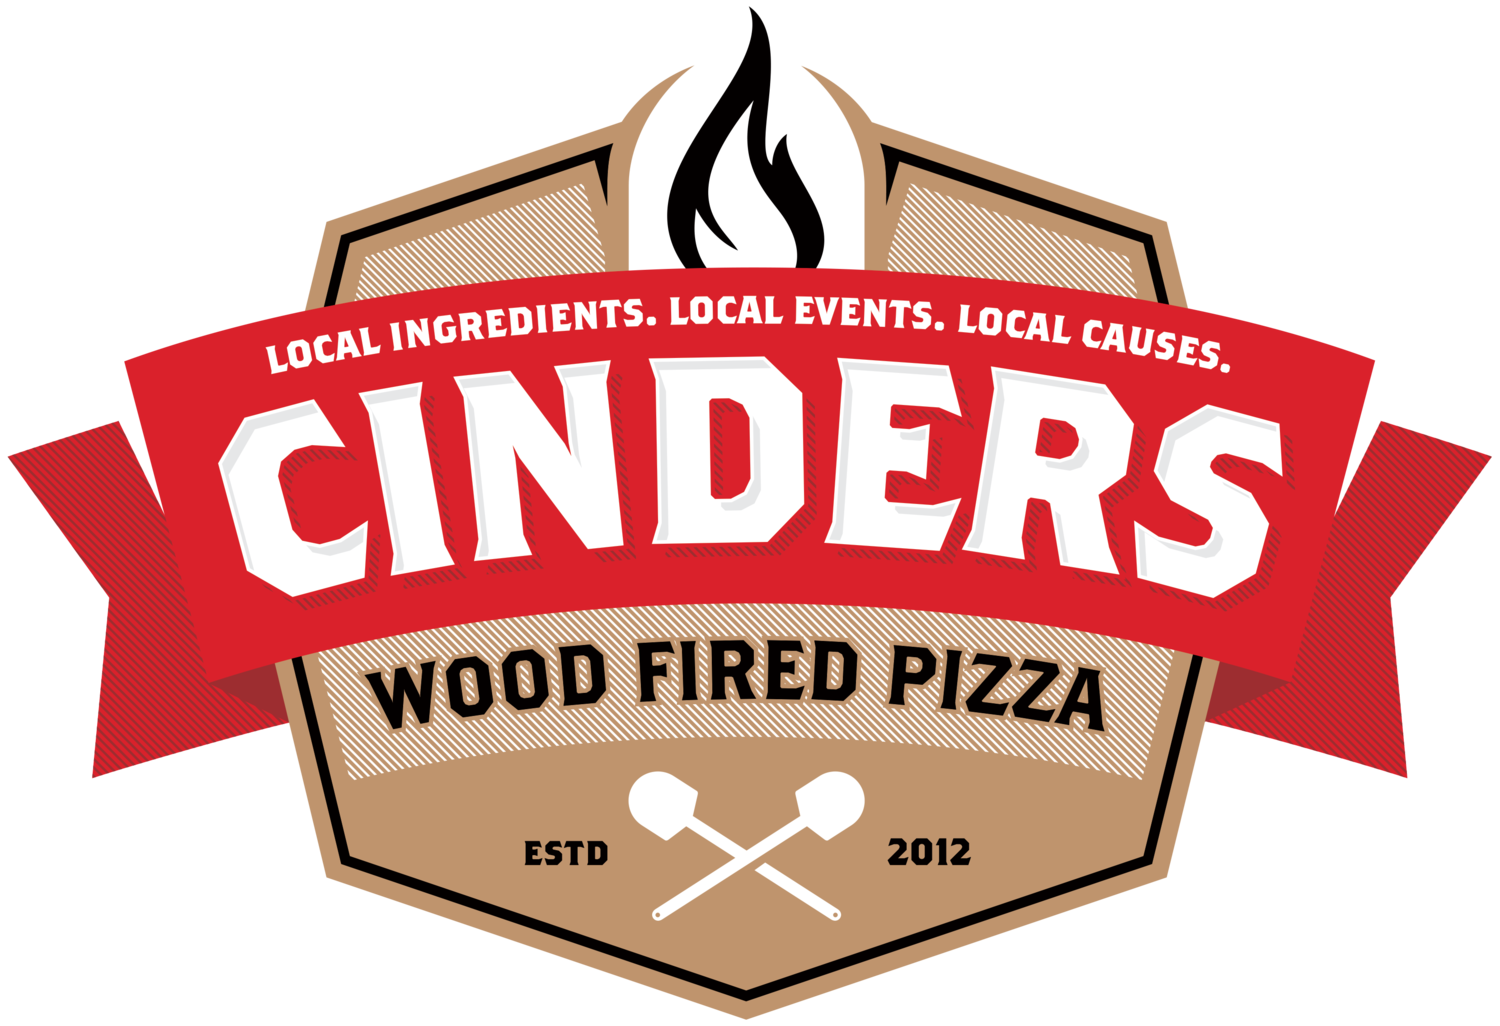 Wood Fired Pizza.